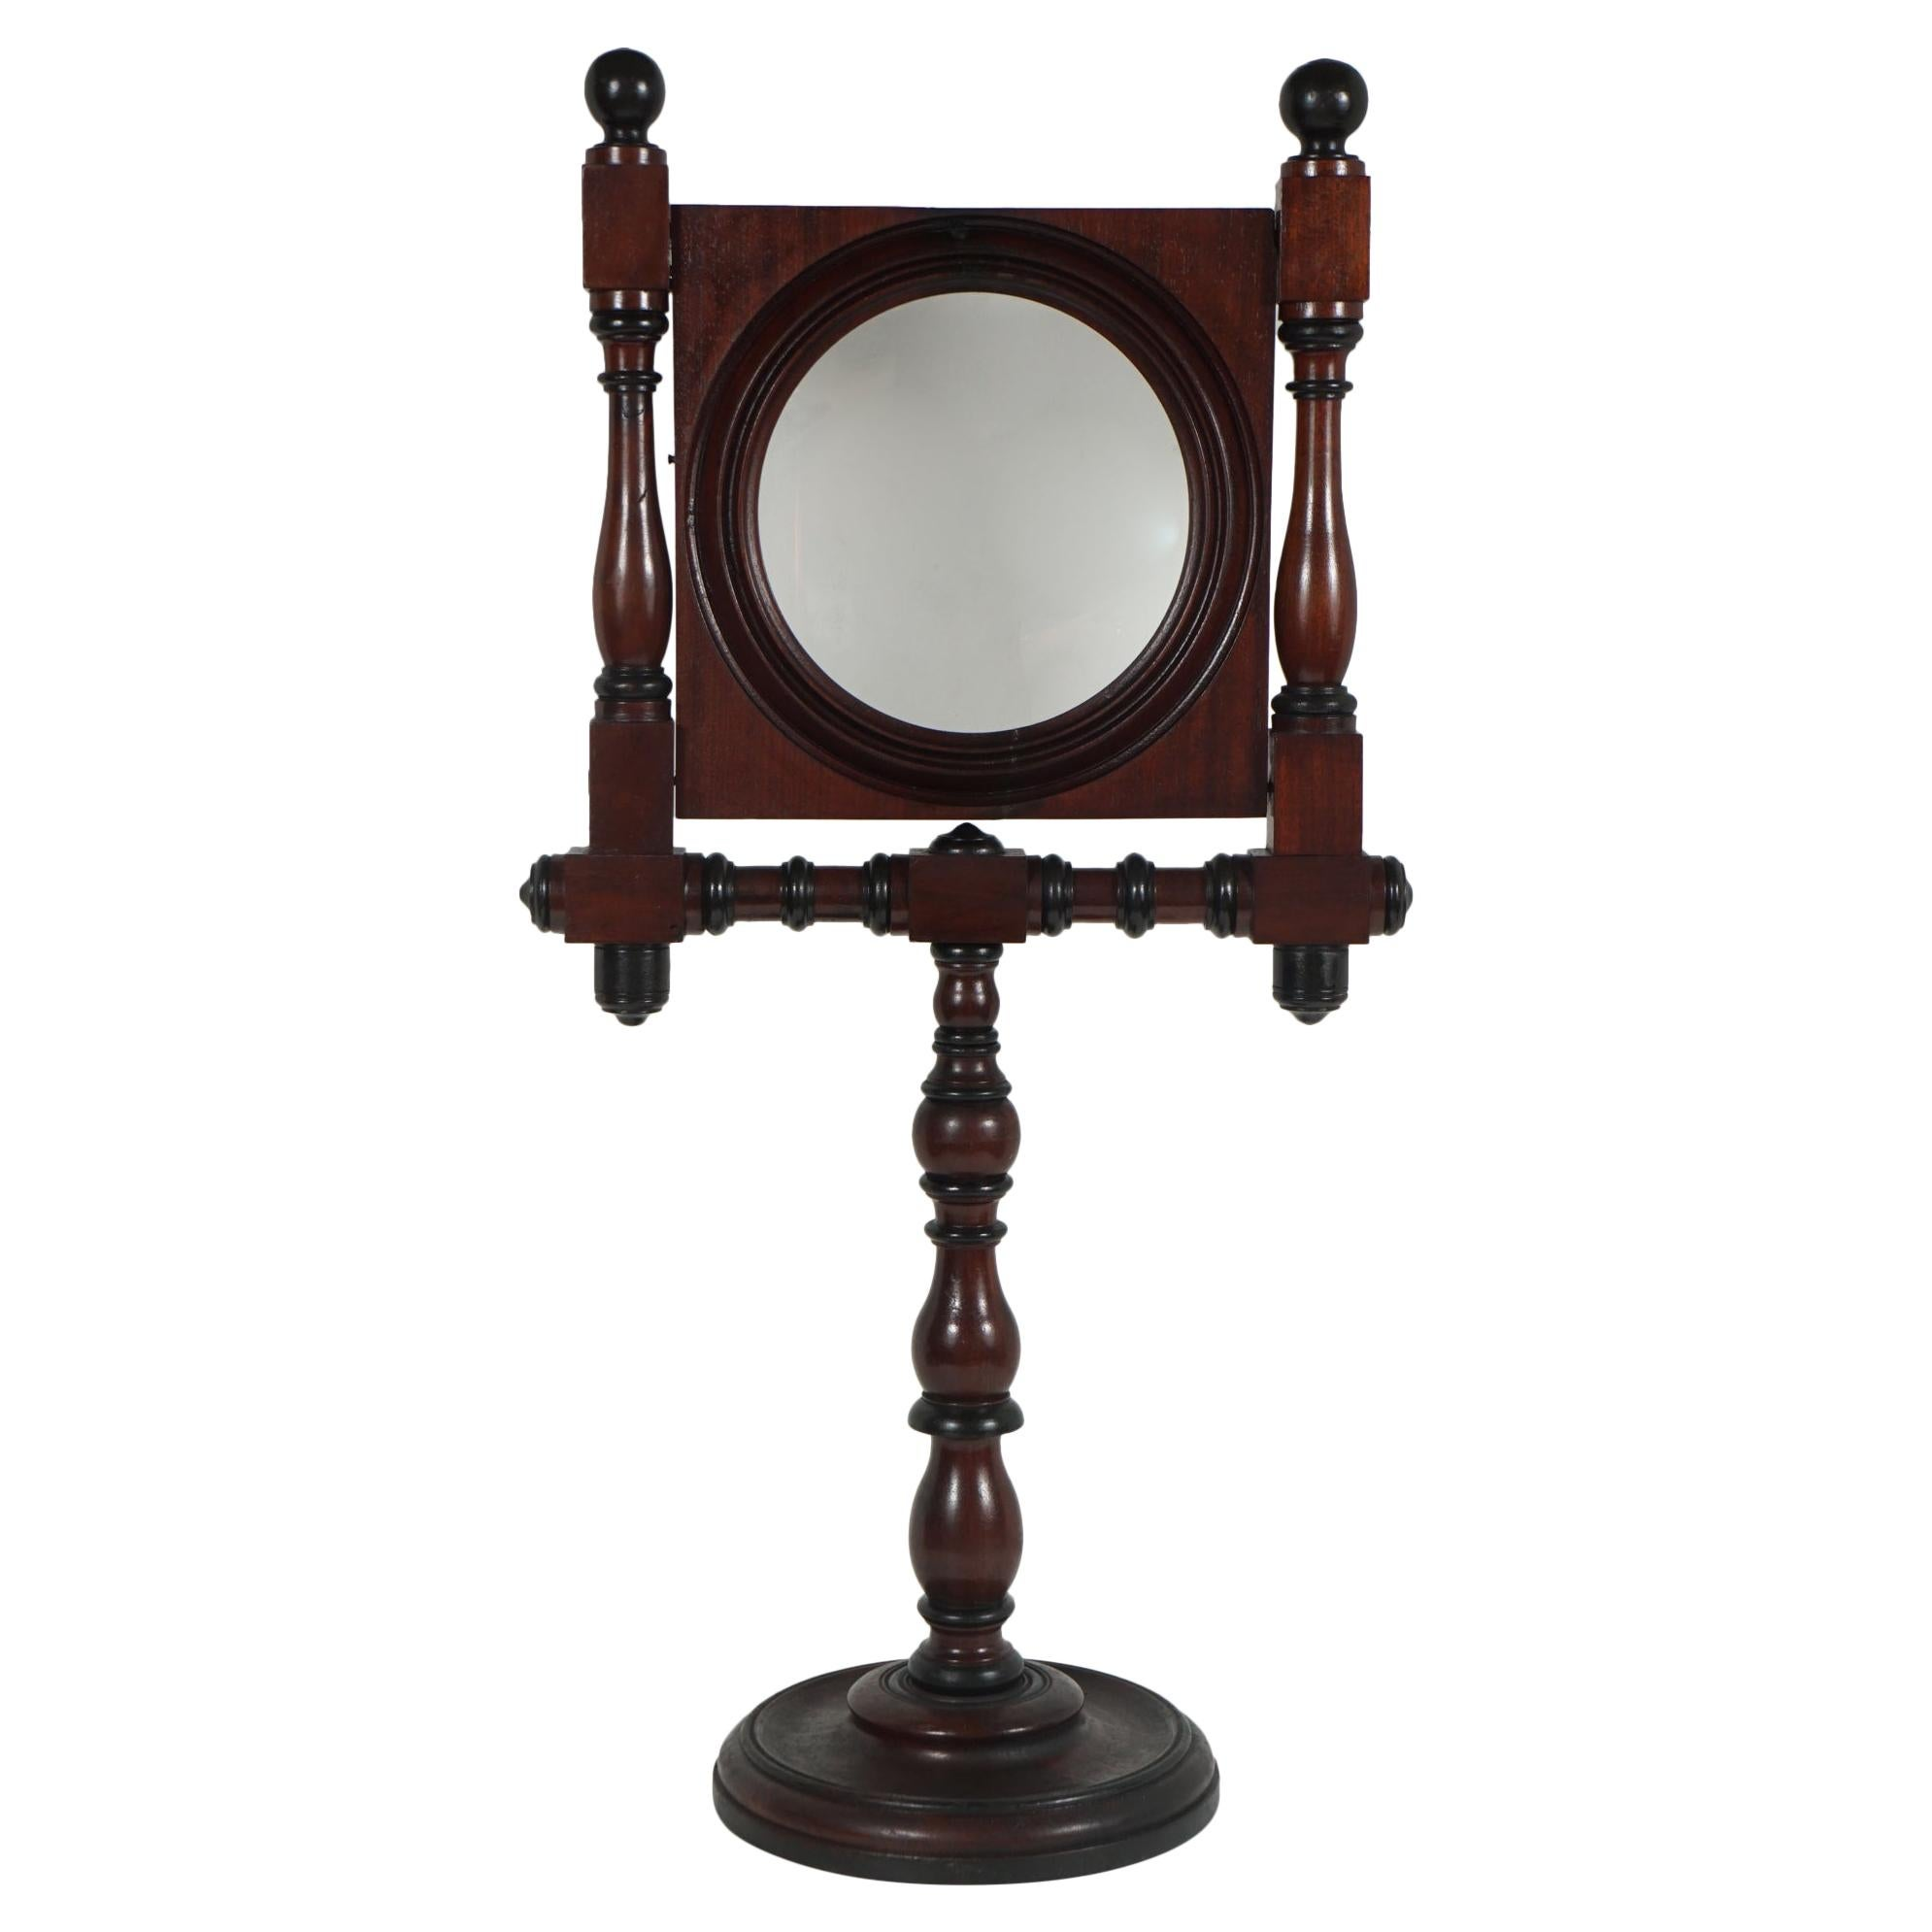 American Victorian Walnut Cased Standing Magnifying Glass